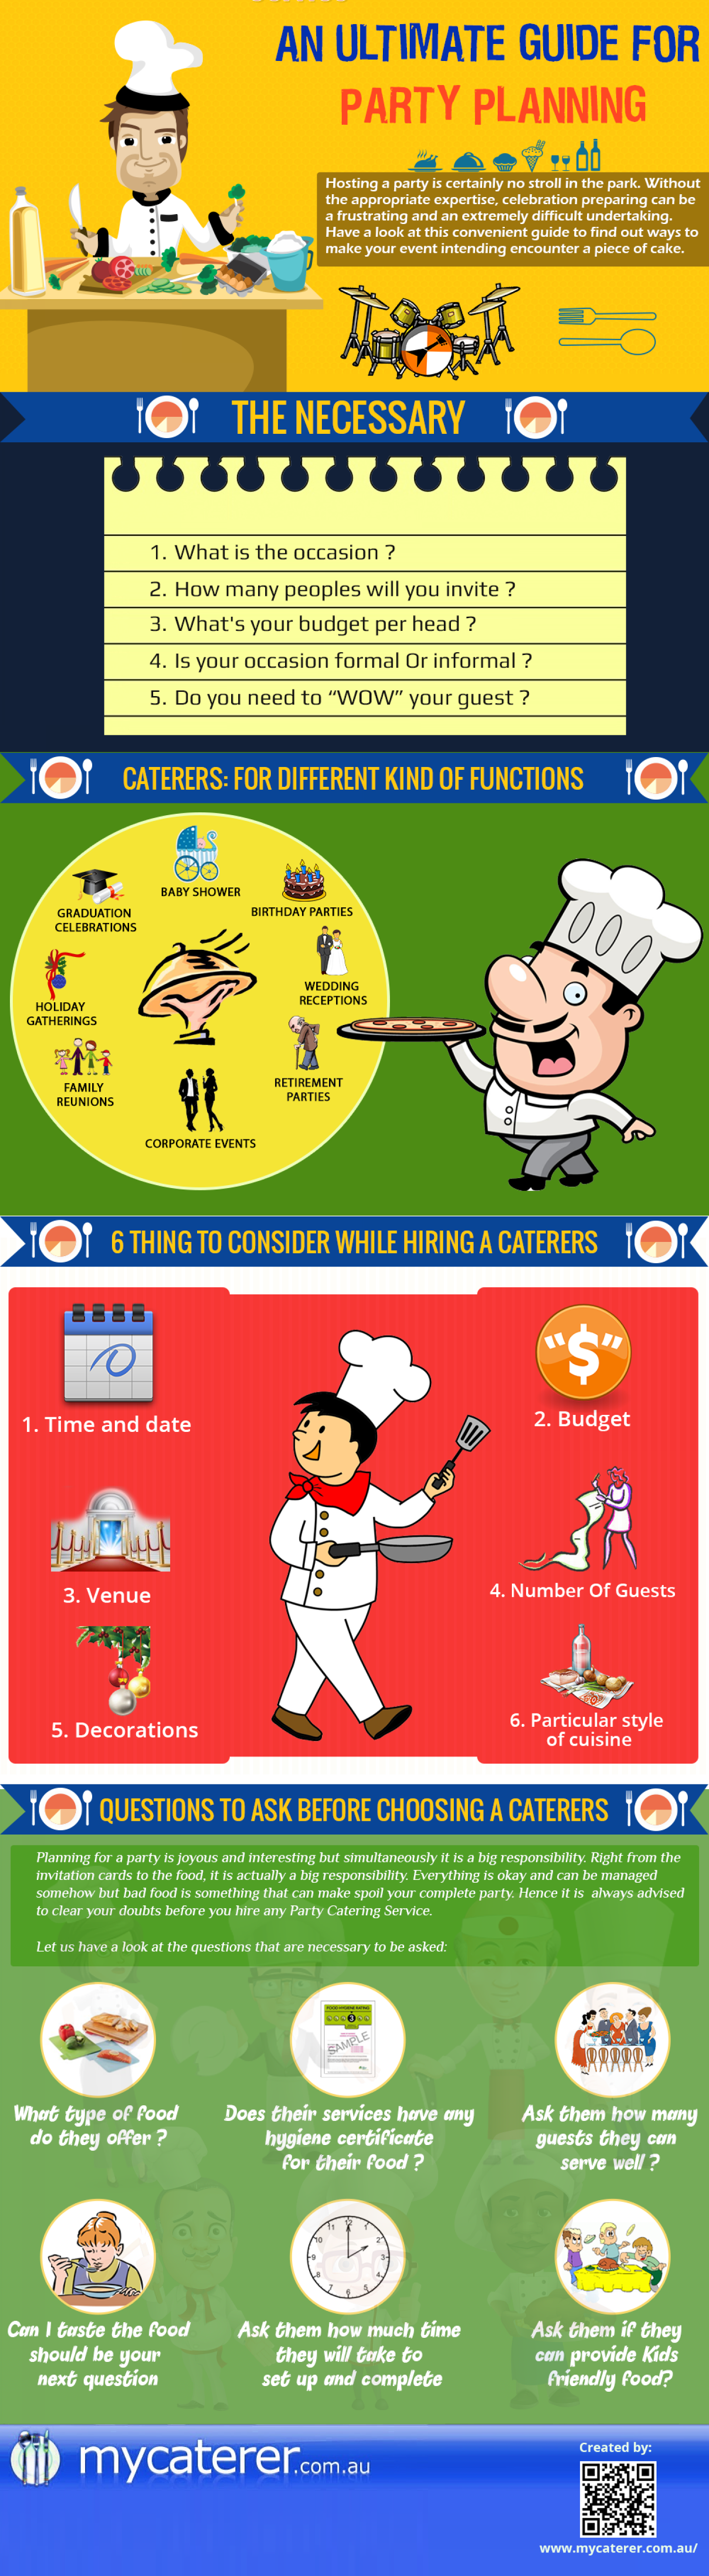 Ultimate Guide For Party Planning Infographic